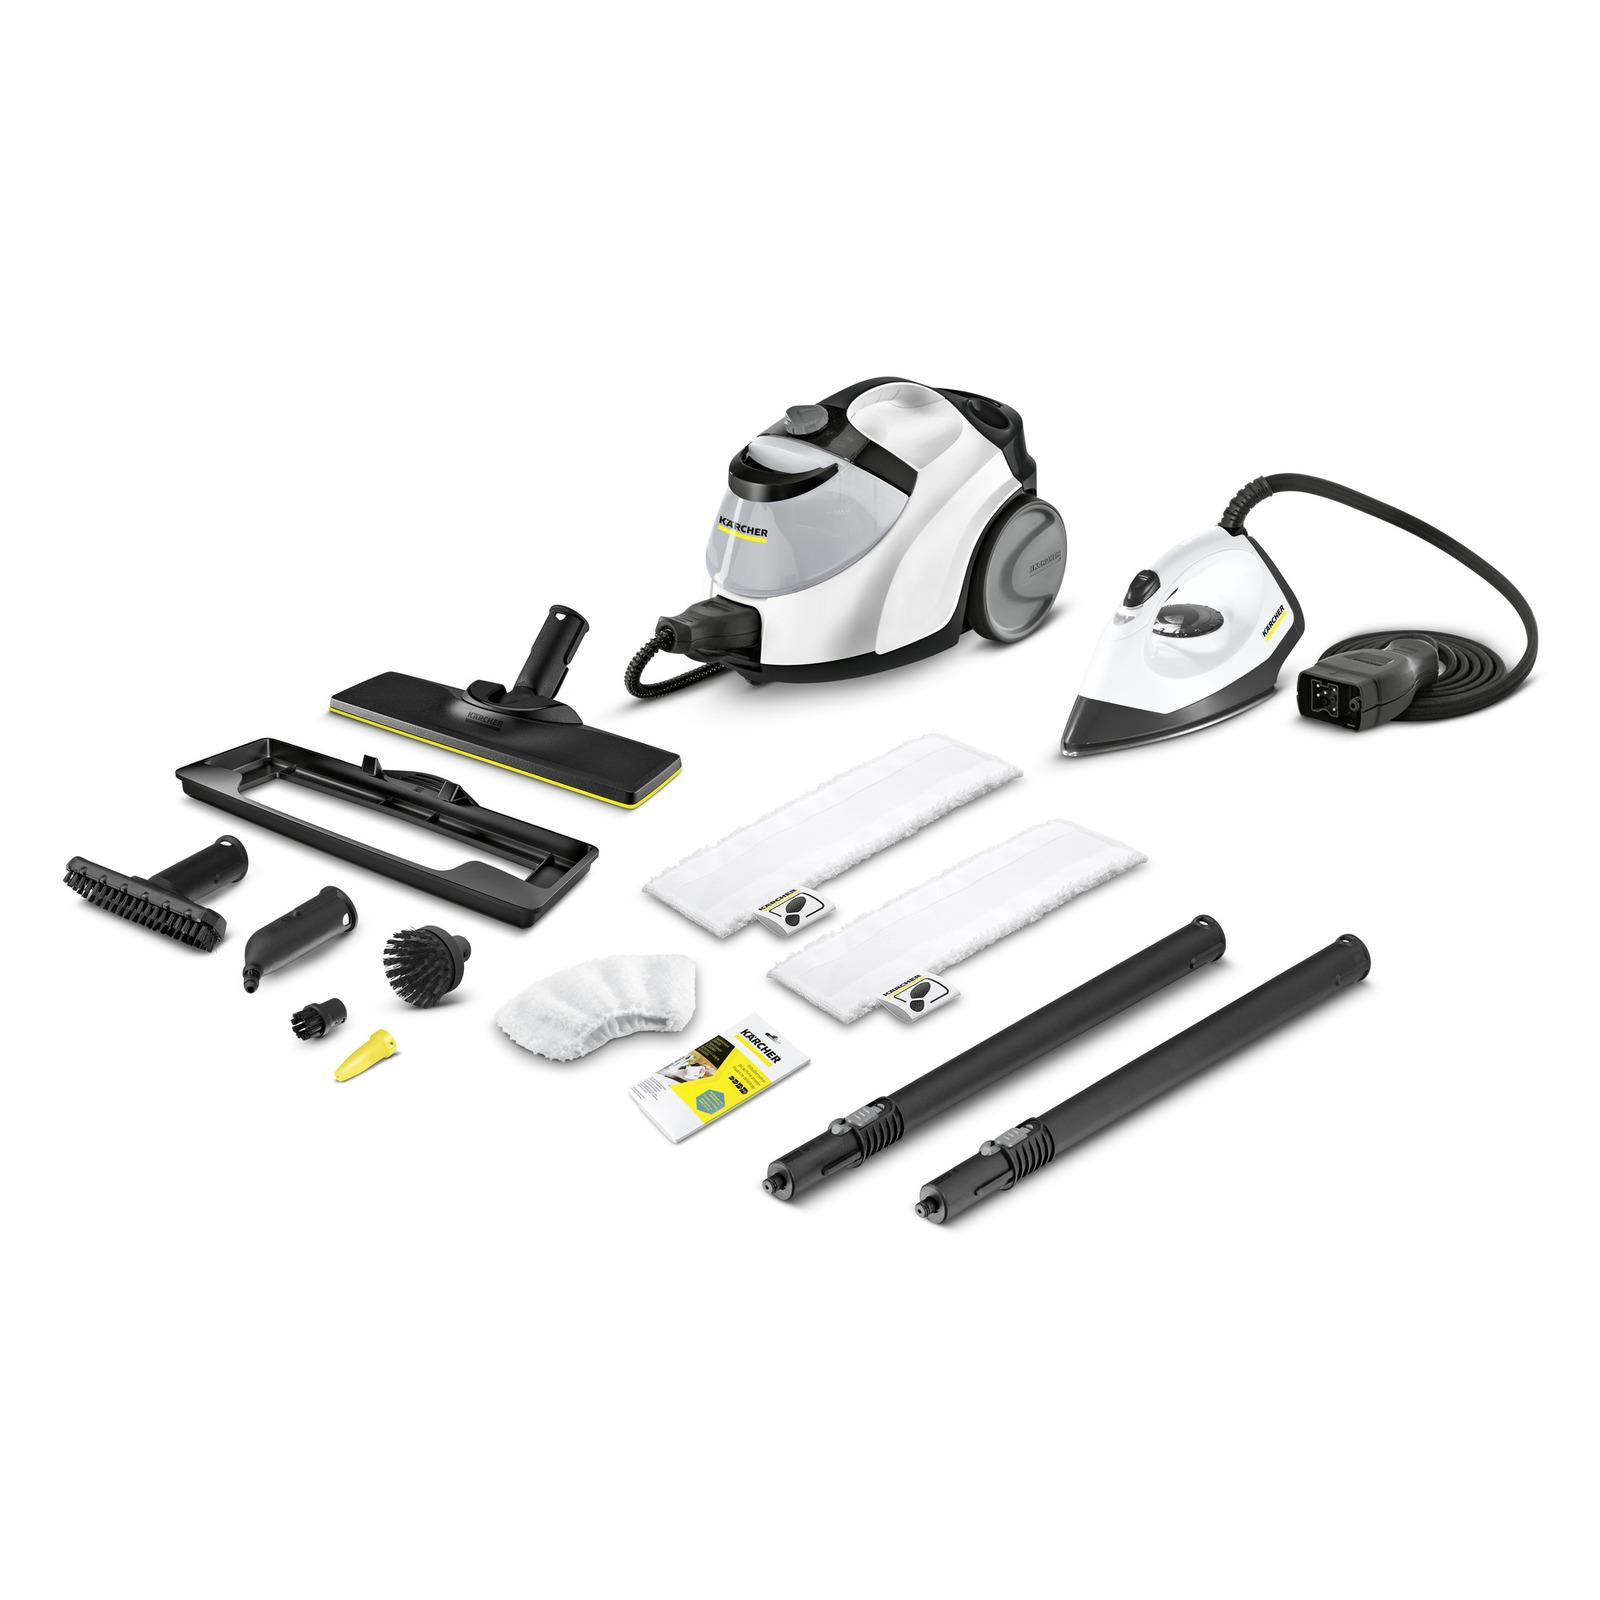 Stoomreiniger Sc 3 Karcher Sc3 Premium Steam Cleaner Unixpaint